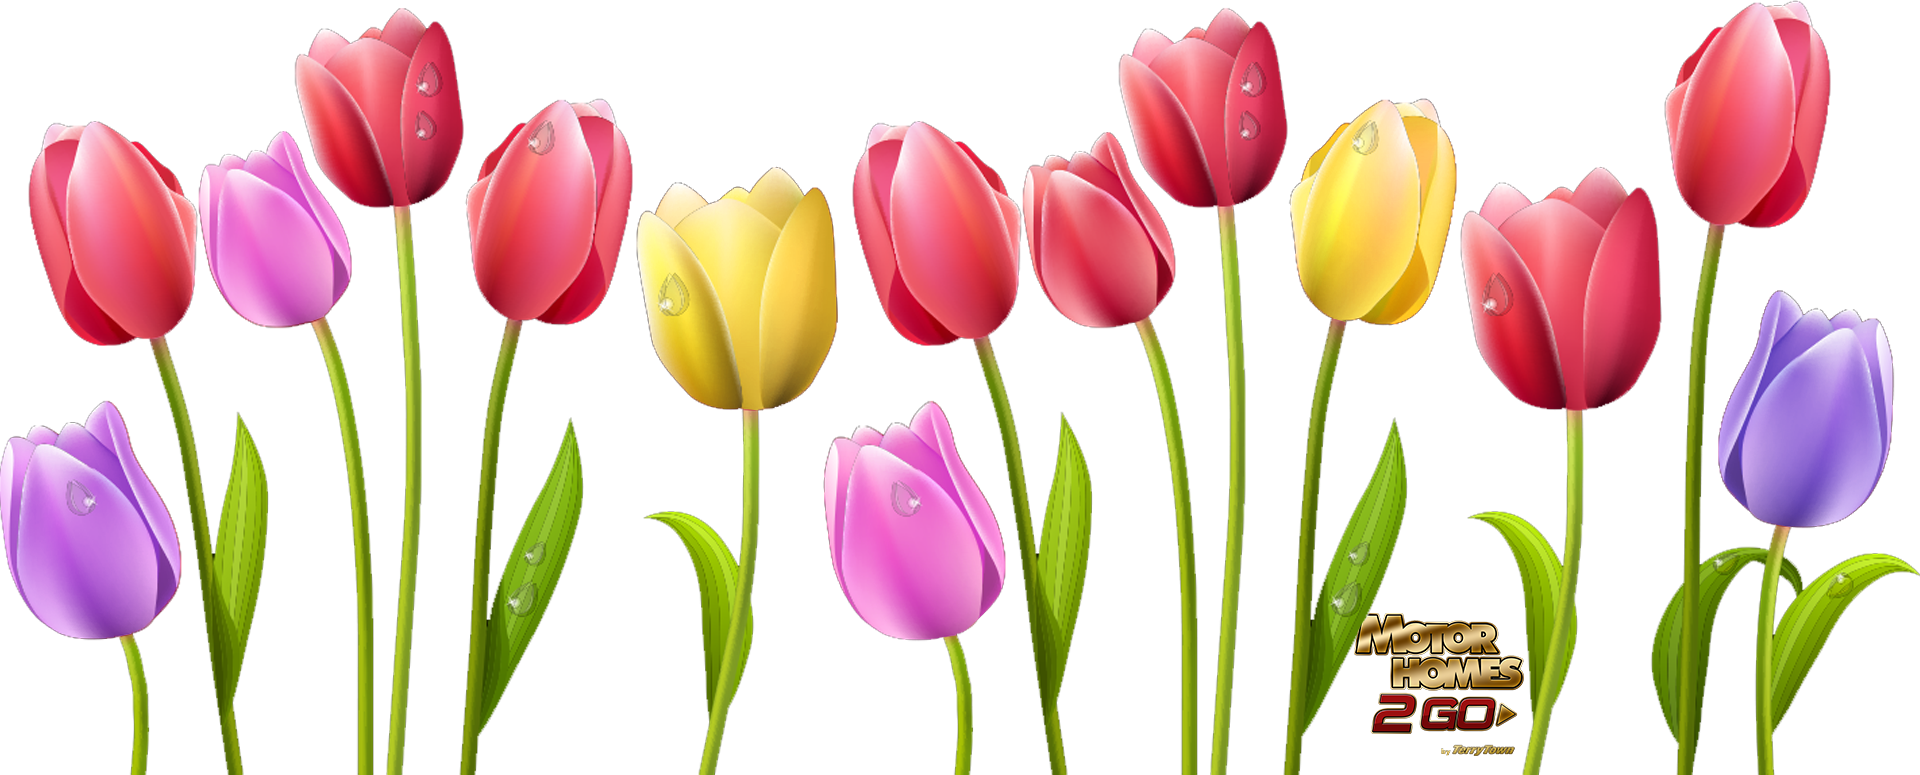 Tulip flower clipart graphic royalty free library Tulip Flower Clipart | jokingart.com Tulip Clipart graphic royalty free library